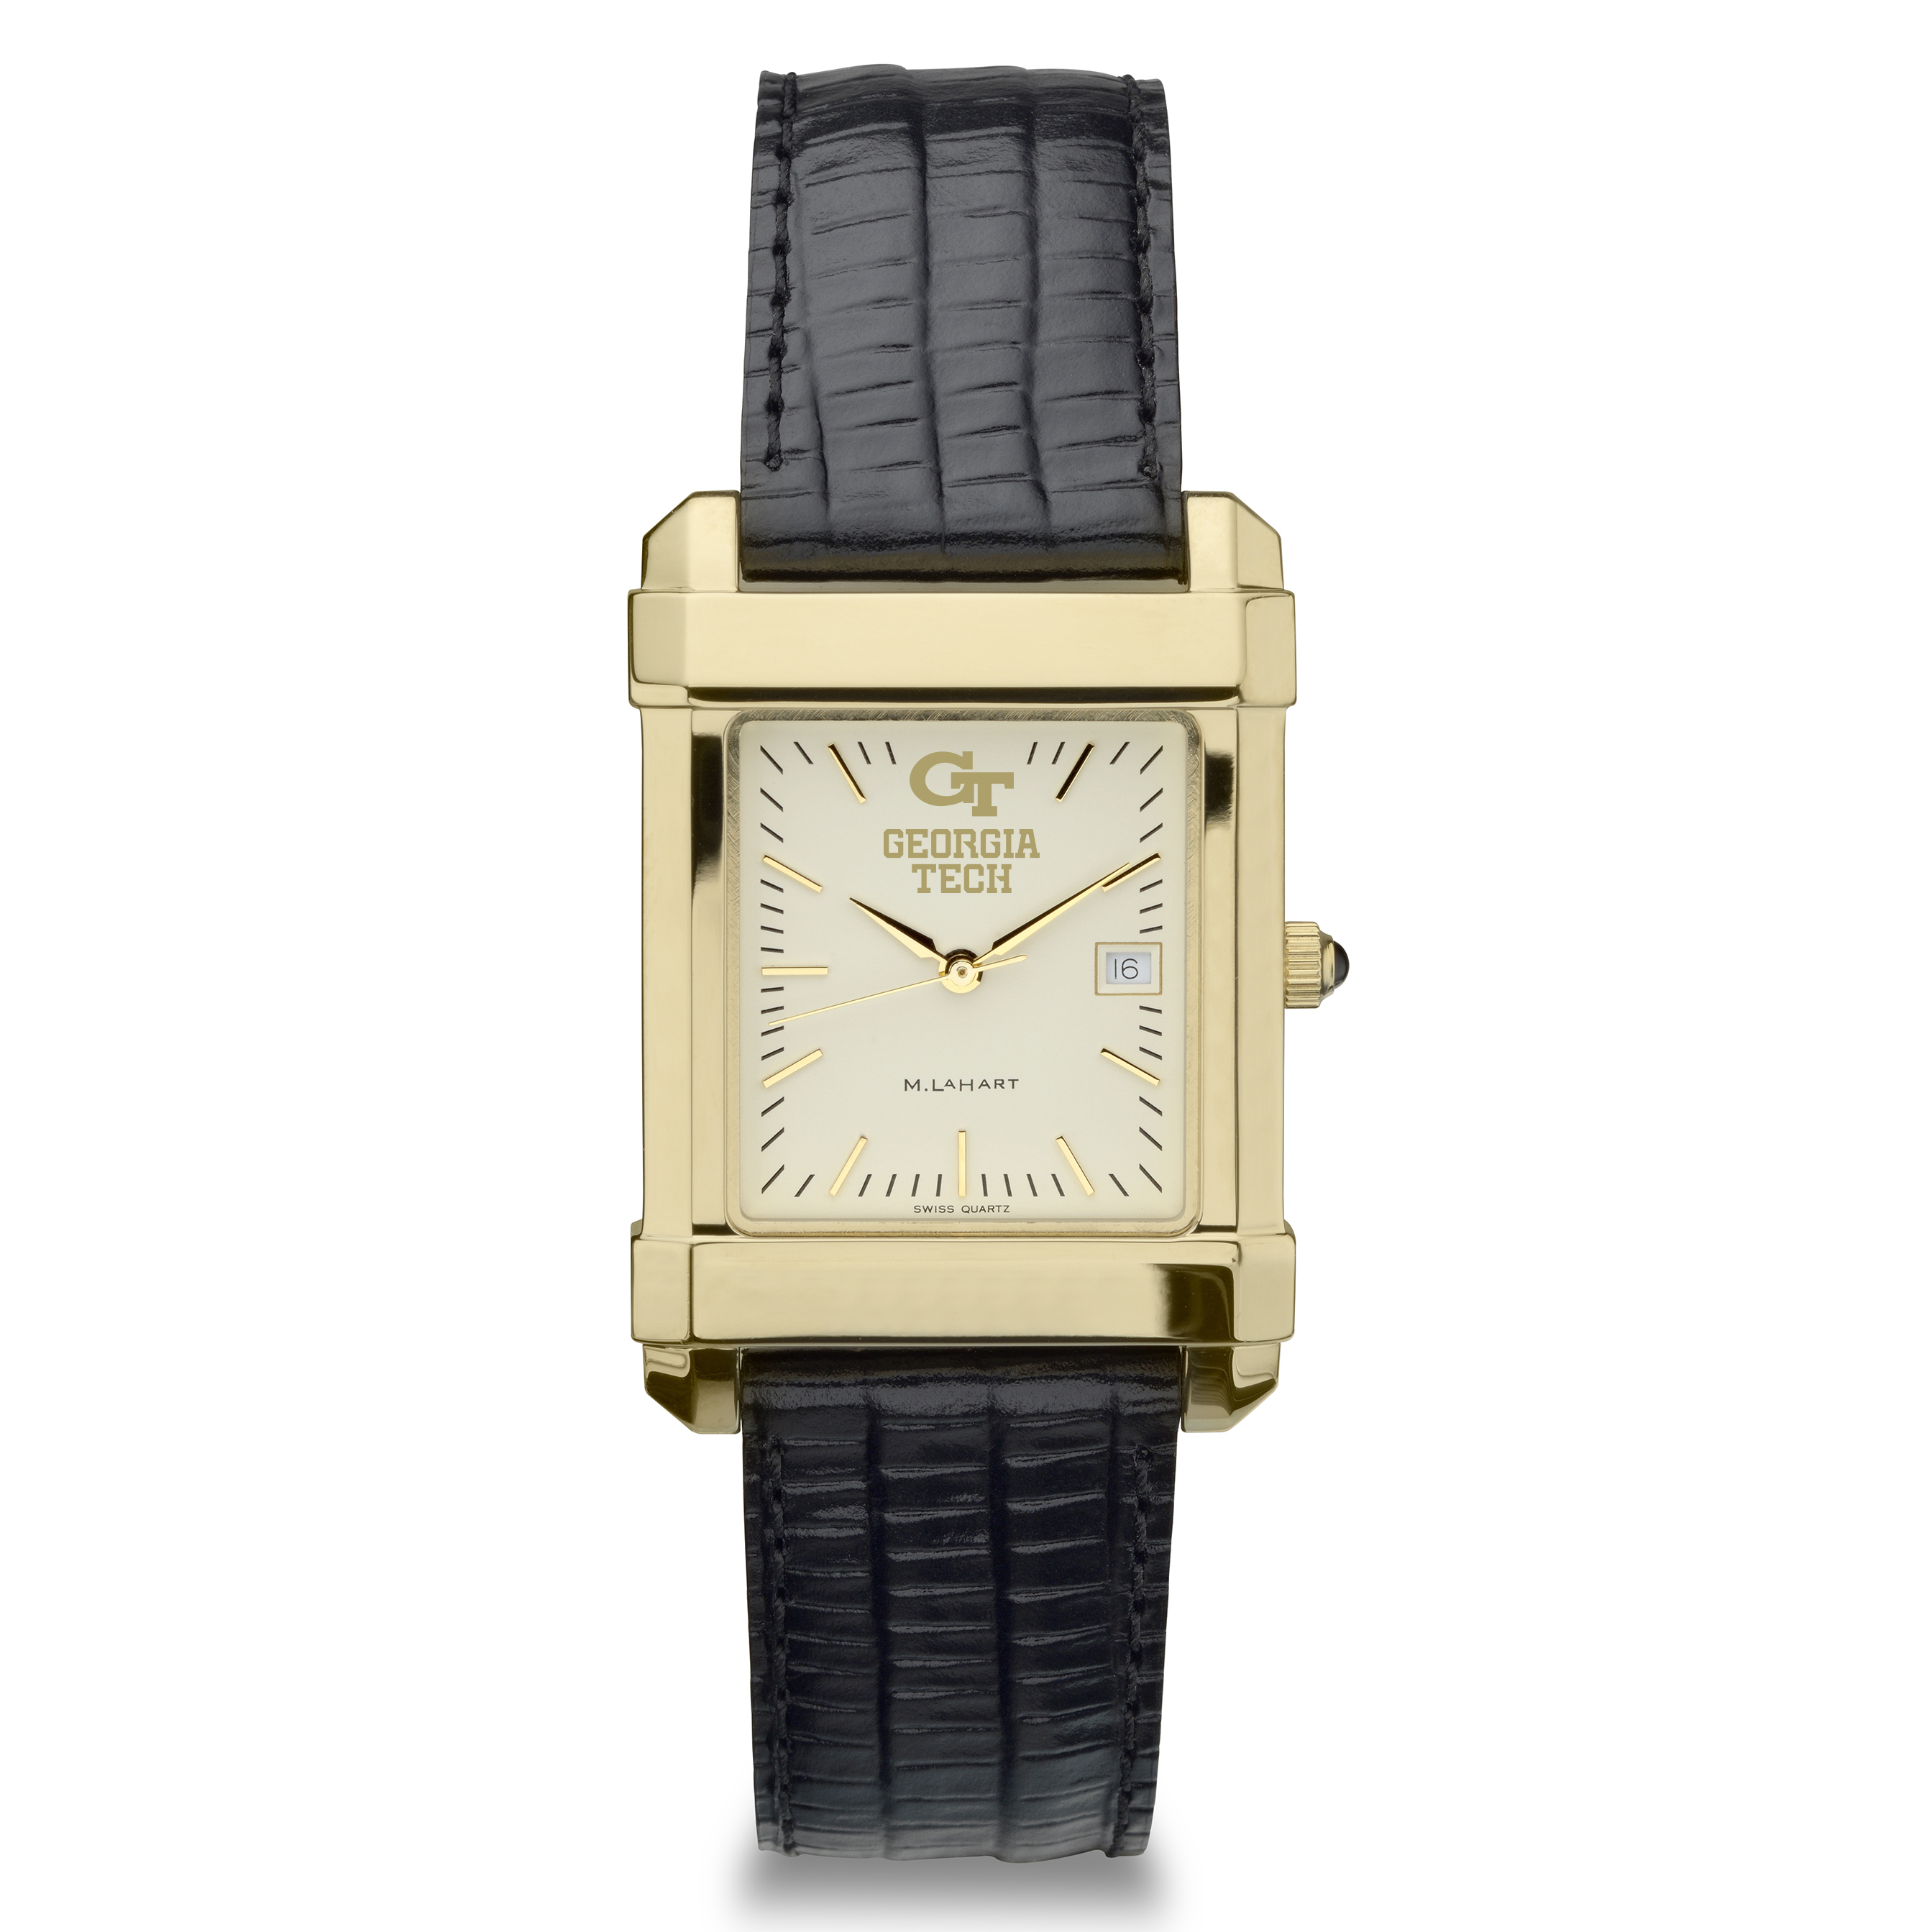 Georgia Tech Men's Gold Quad Watch with Leather Strap - Image 2